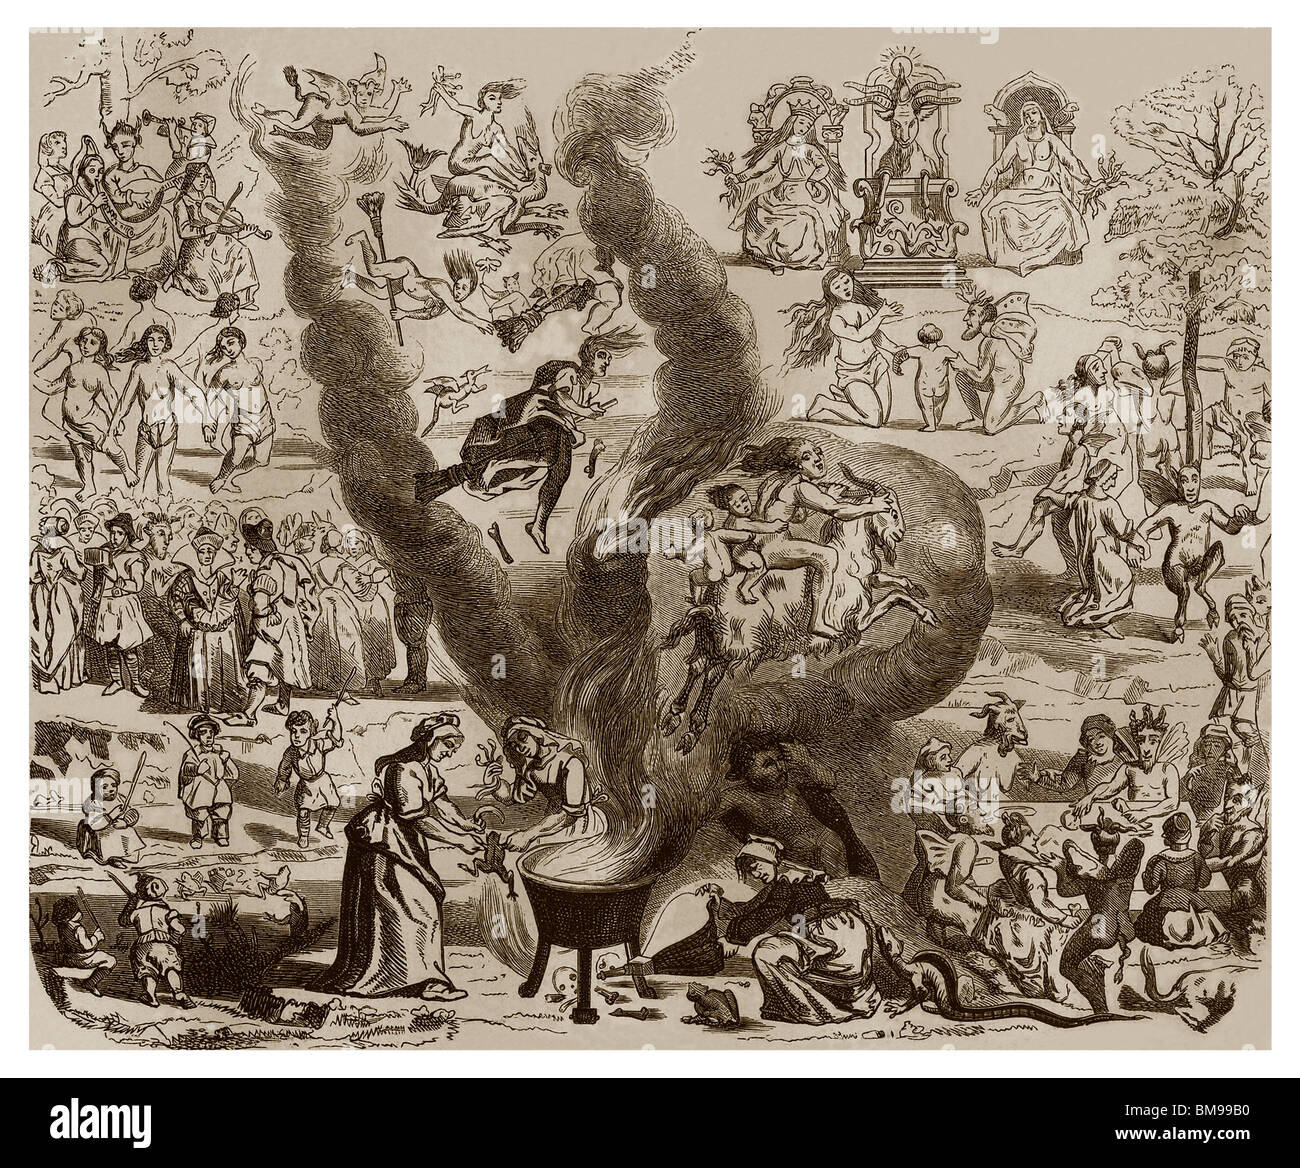 Witches' Sabbath in the High Middle Ages in France: Night ceremony of witches. - Stock Image